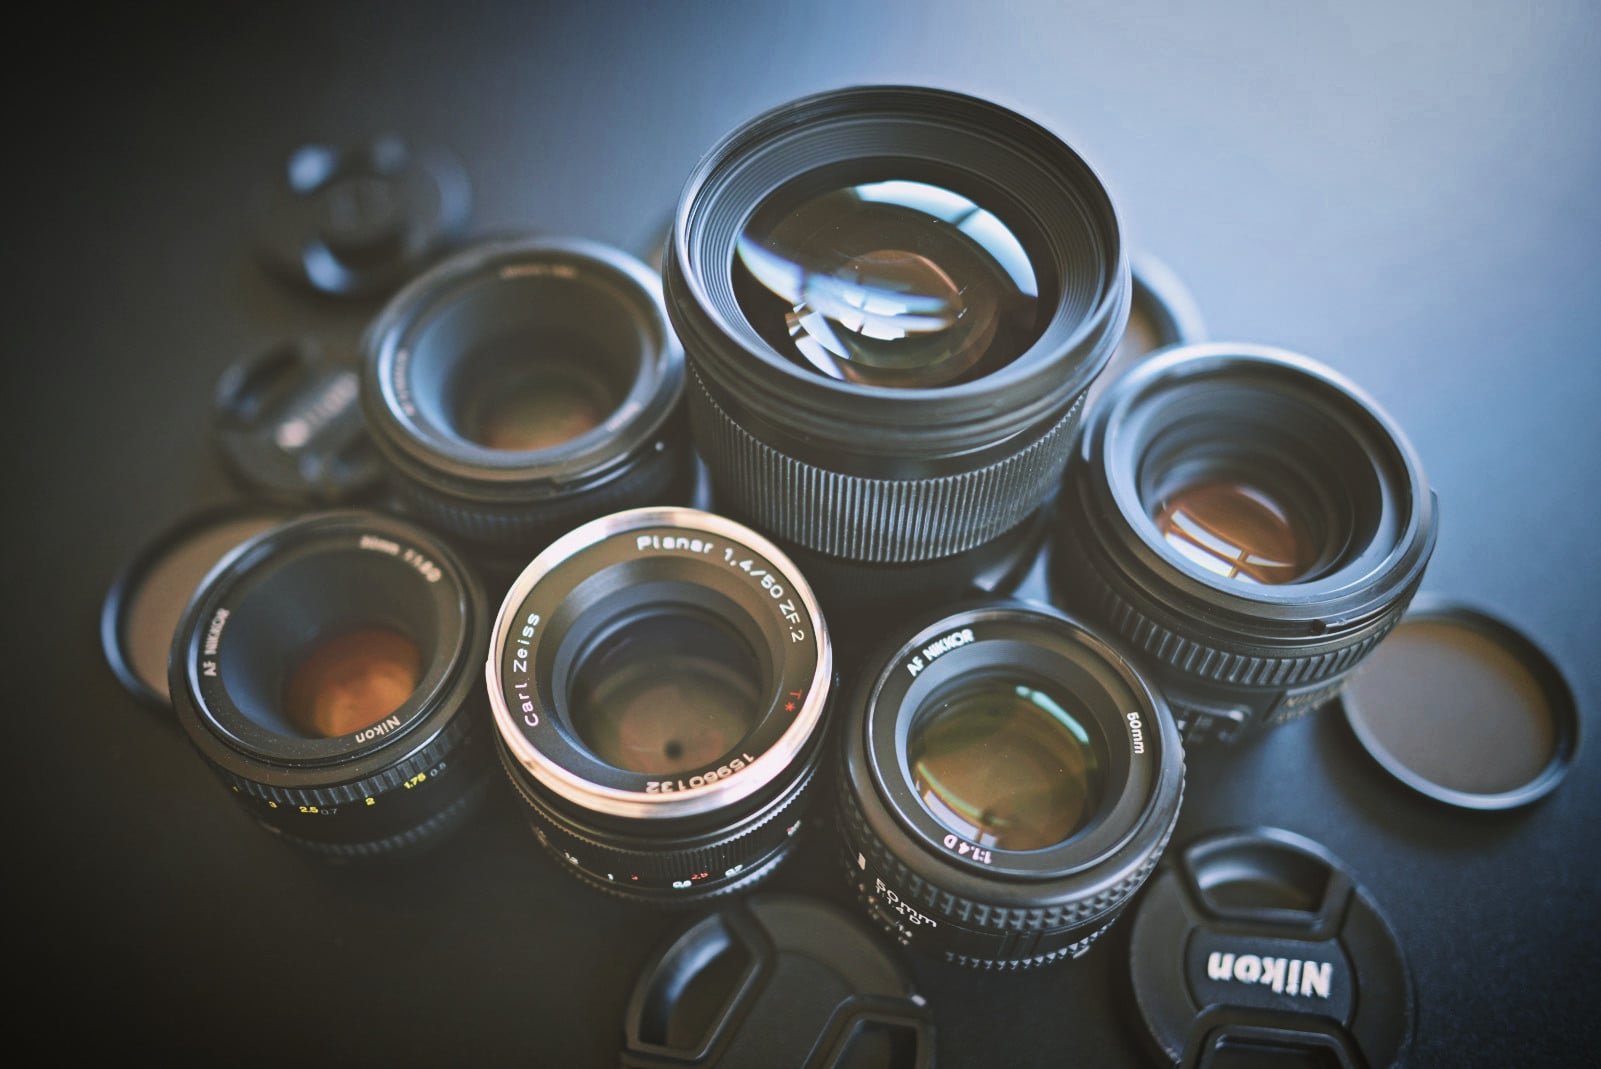 Six 50MM F1 4 and F1 8 lens for Nikon compared - Lens Battle by Polarr